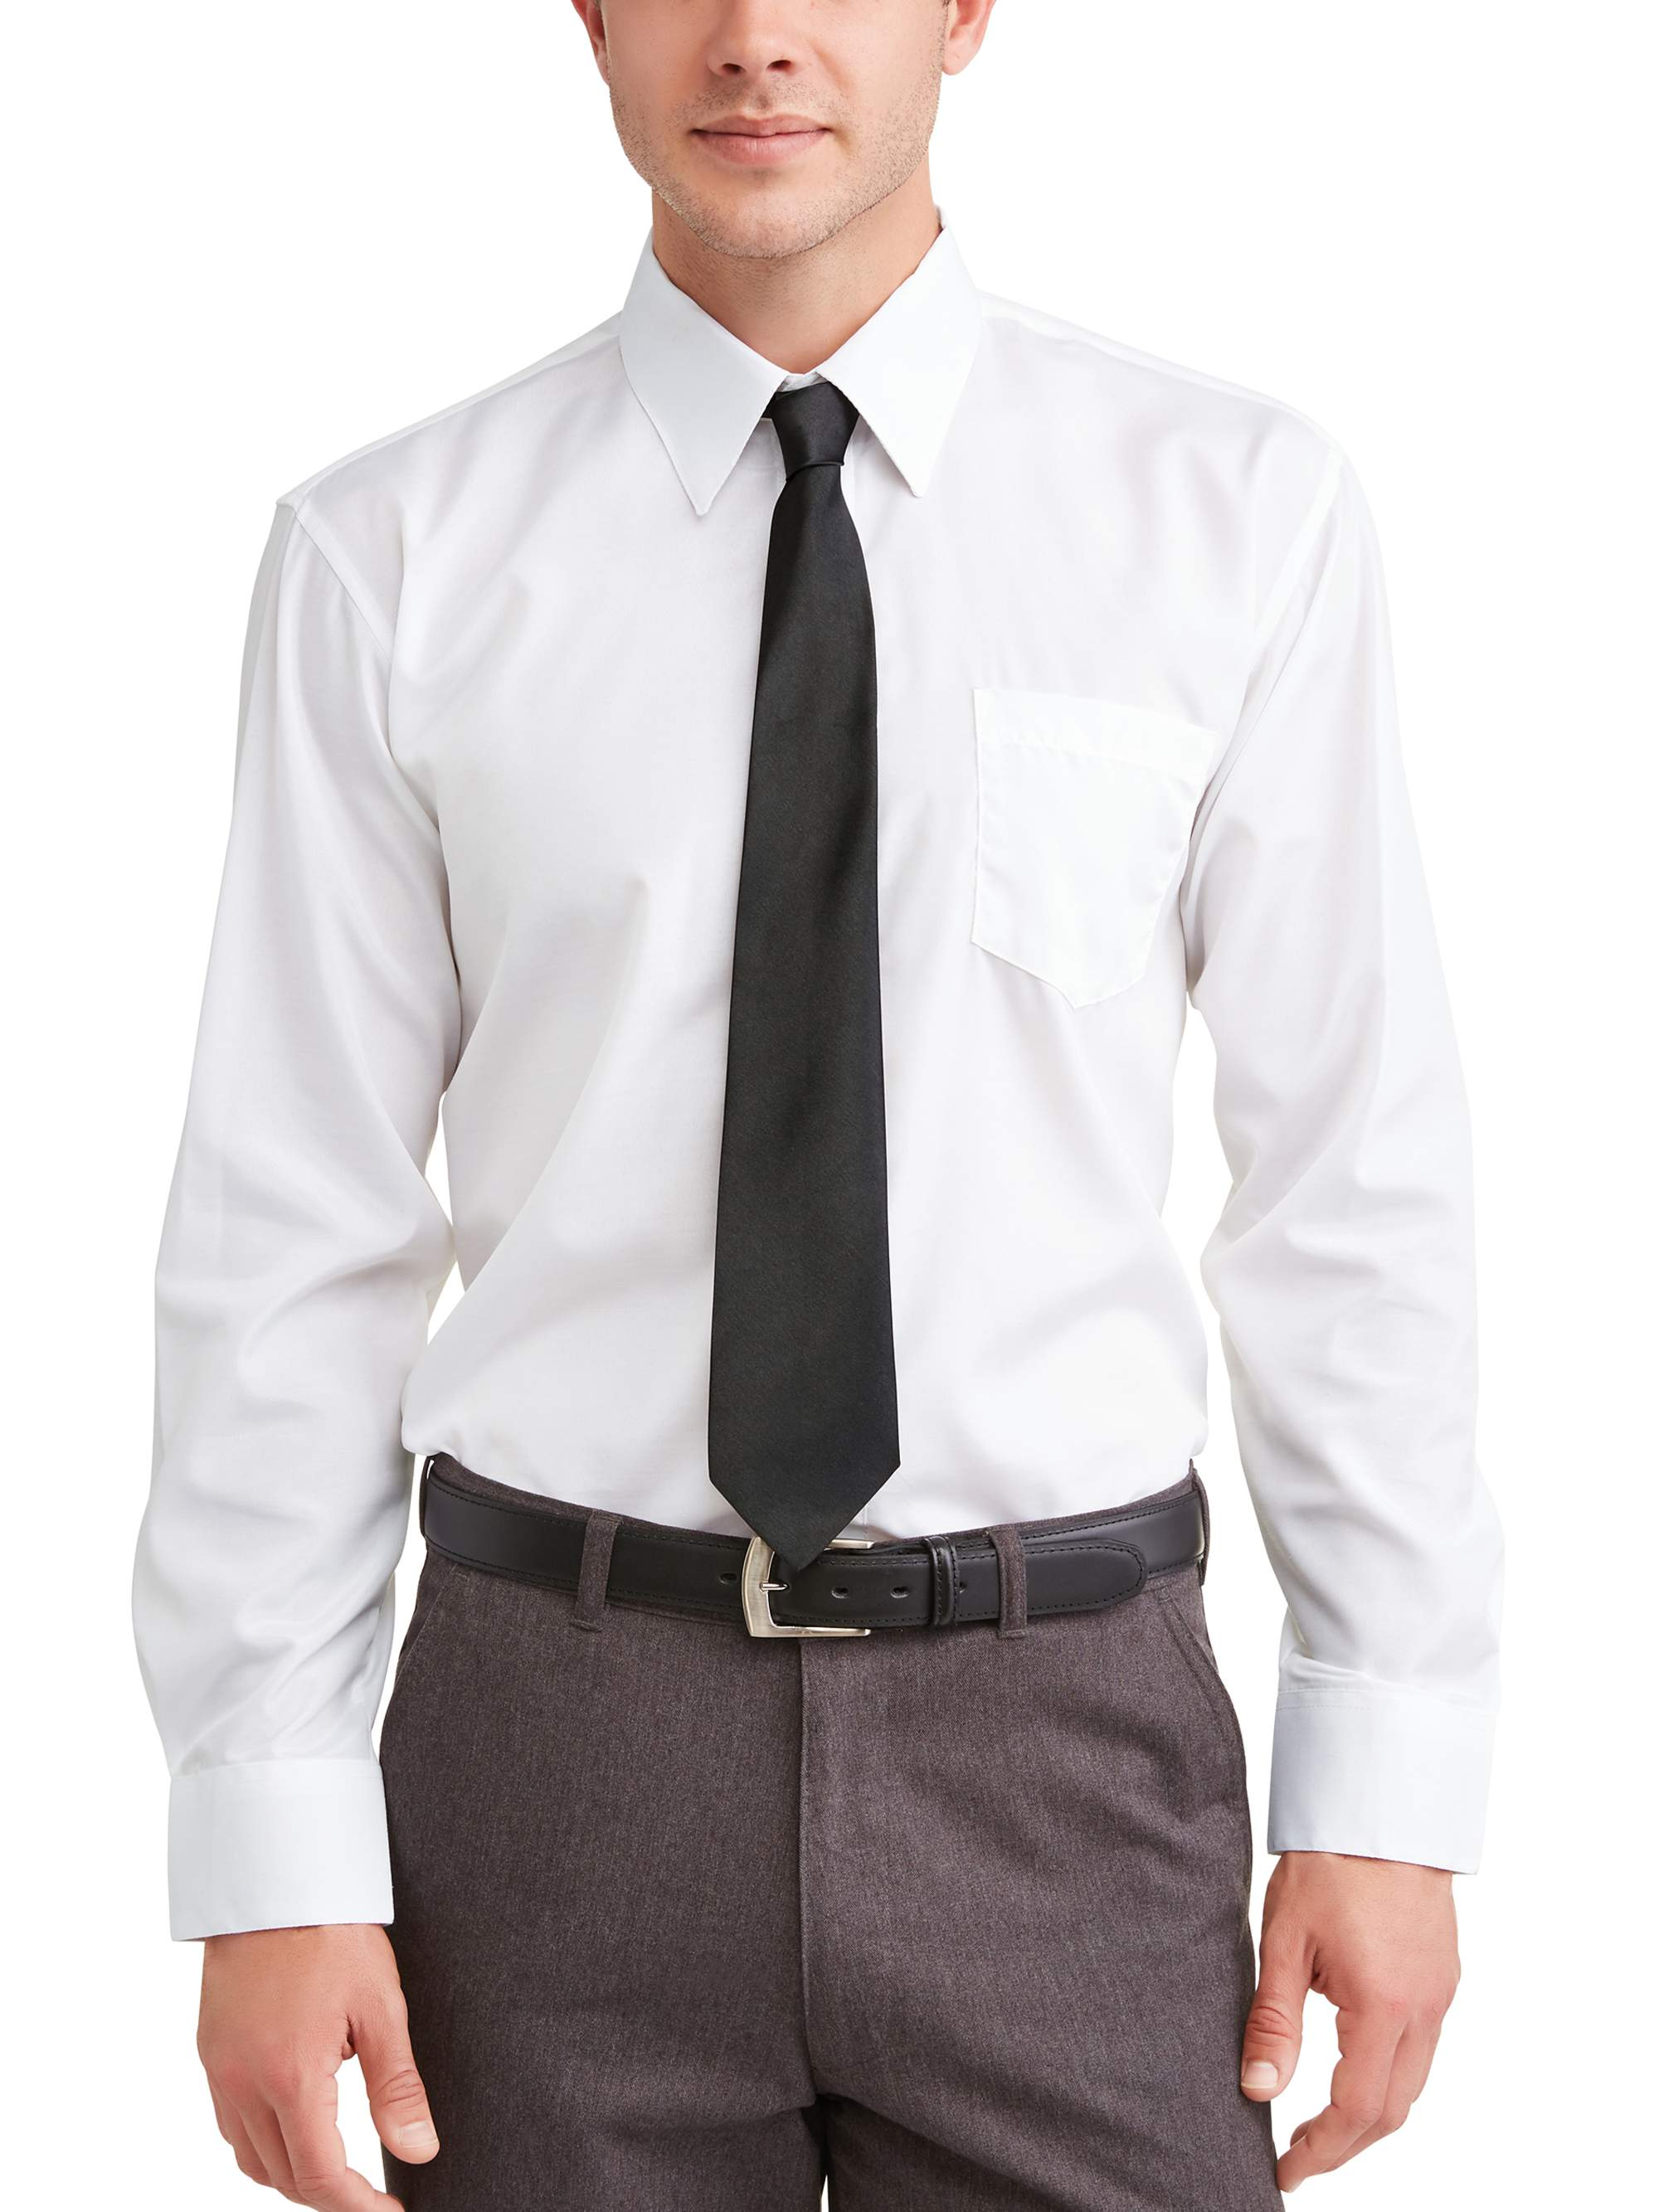 Silver Label Men's Solid White Dress Shirt With Tie, up to size 5X